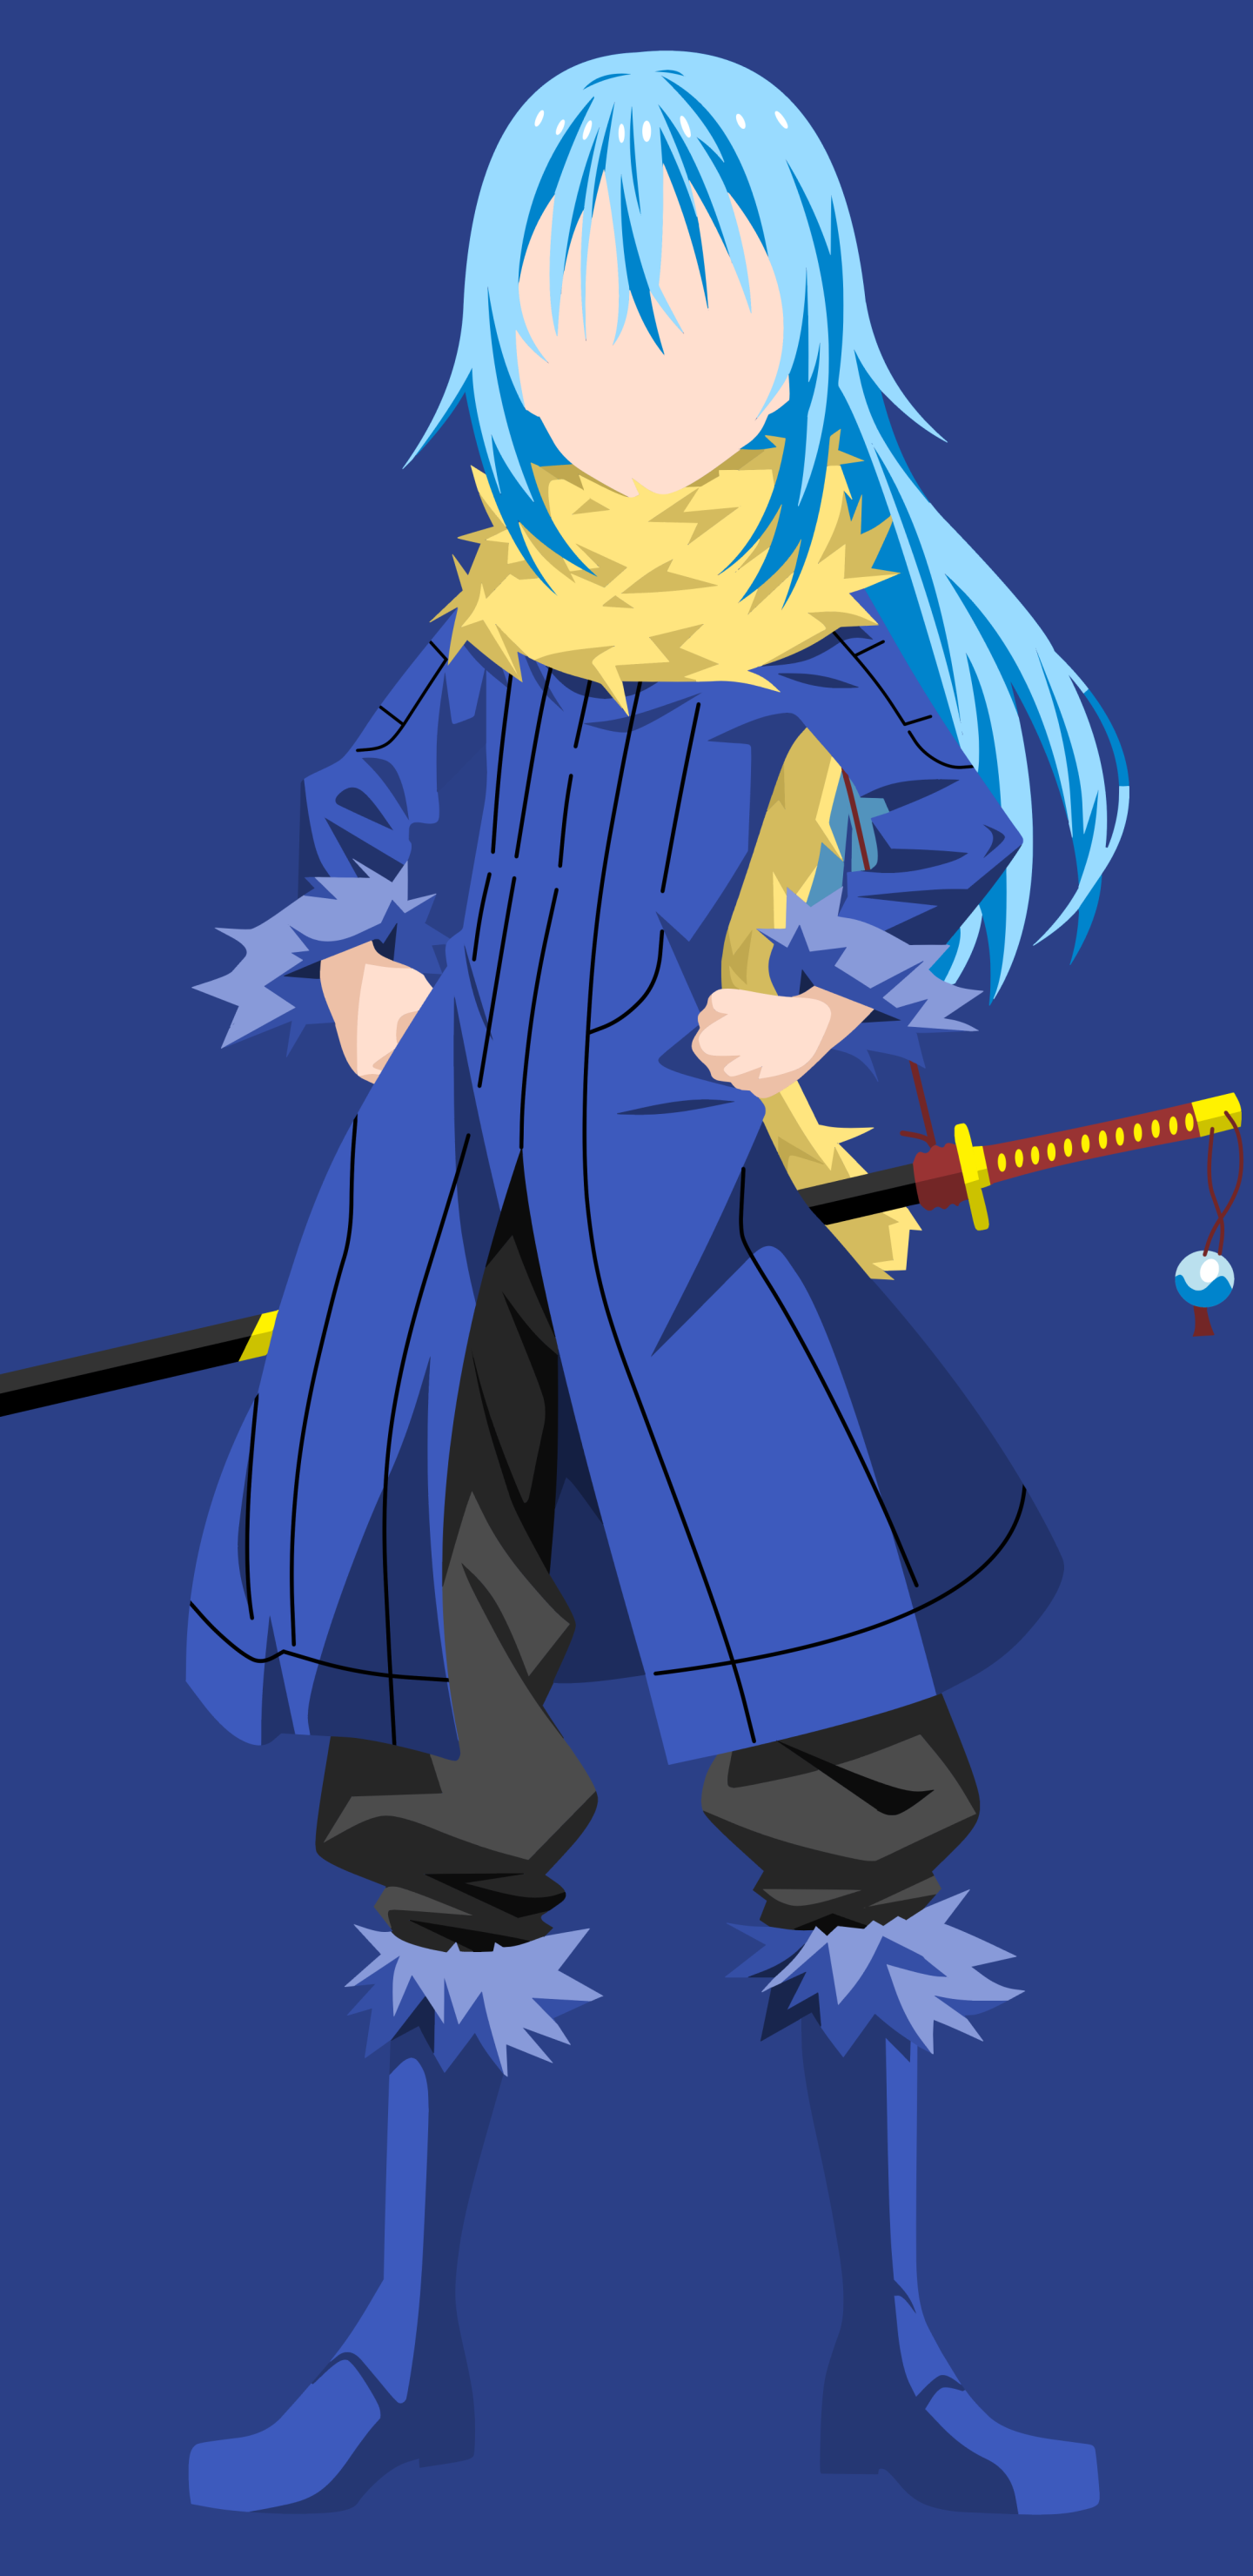 Anime That Time I Got Reincarnated As A Slime 1440x2960